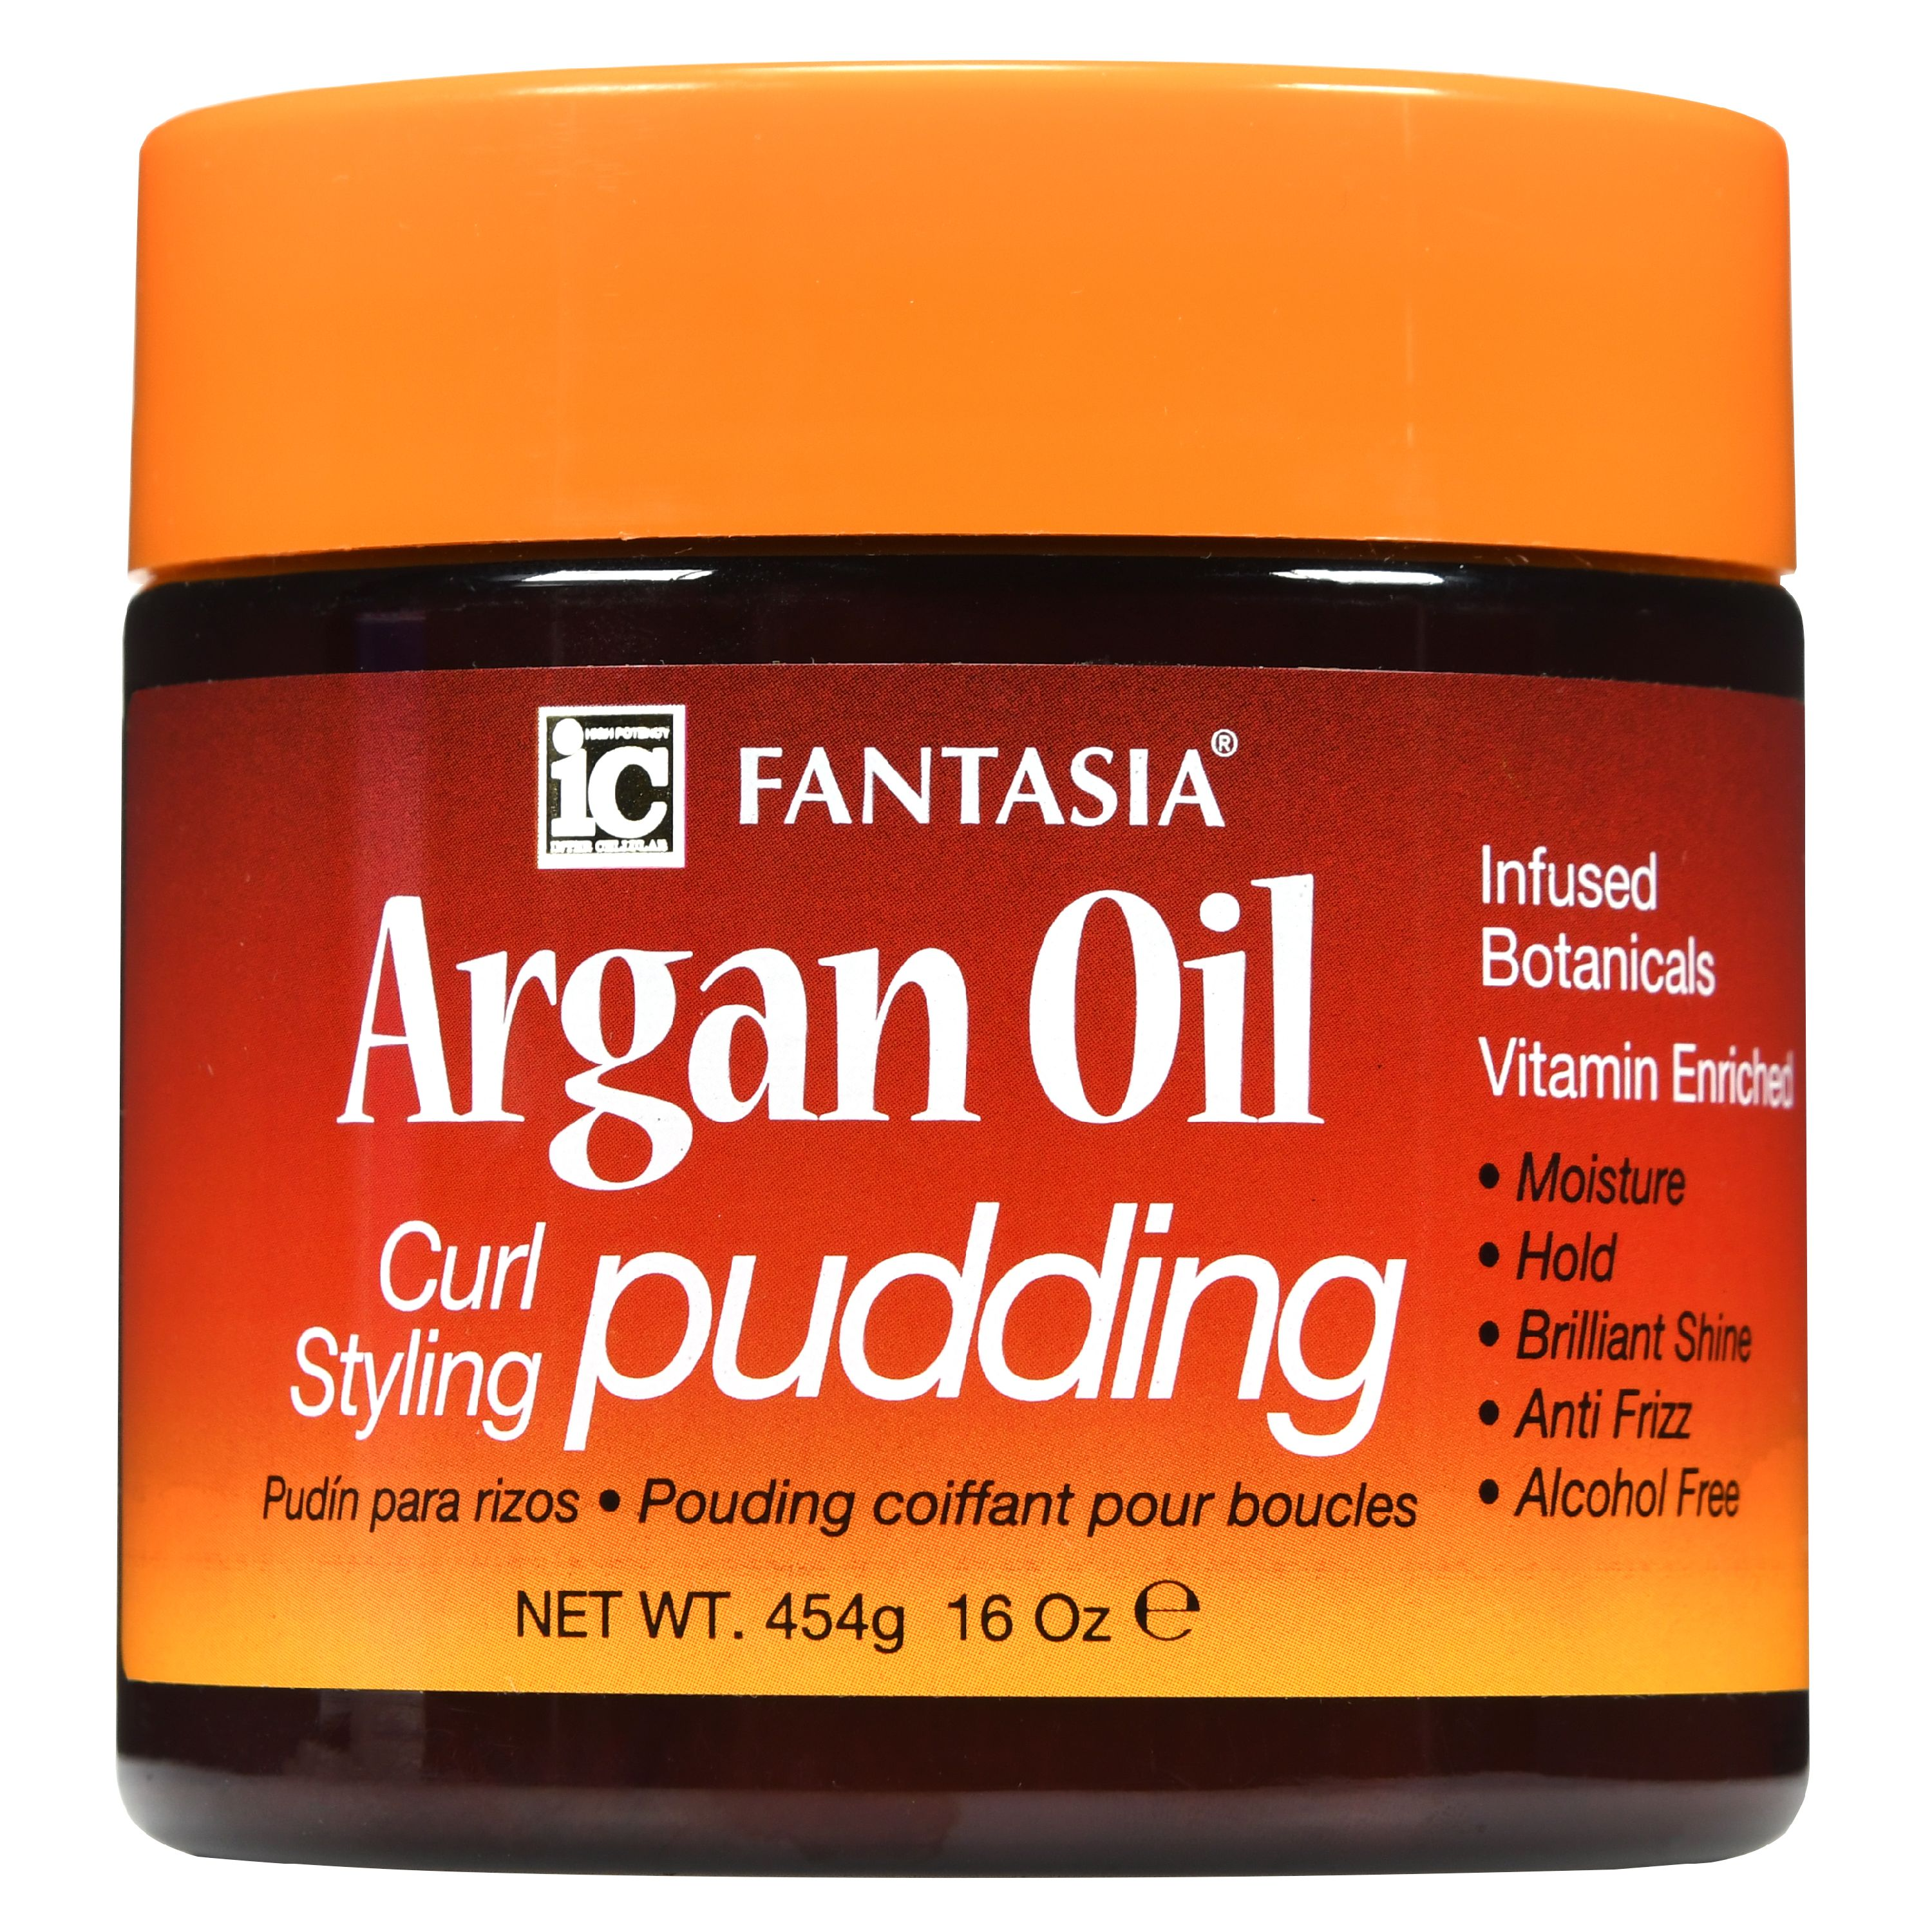 Fantasia Argan Oil Curl Styling Pudding, 16 oz